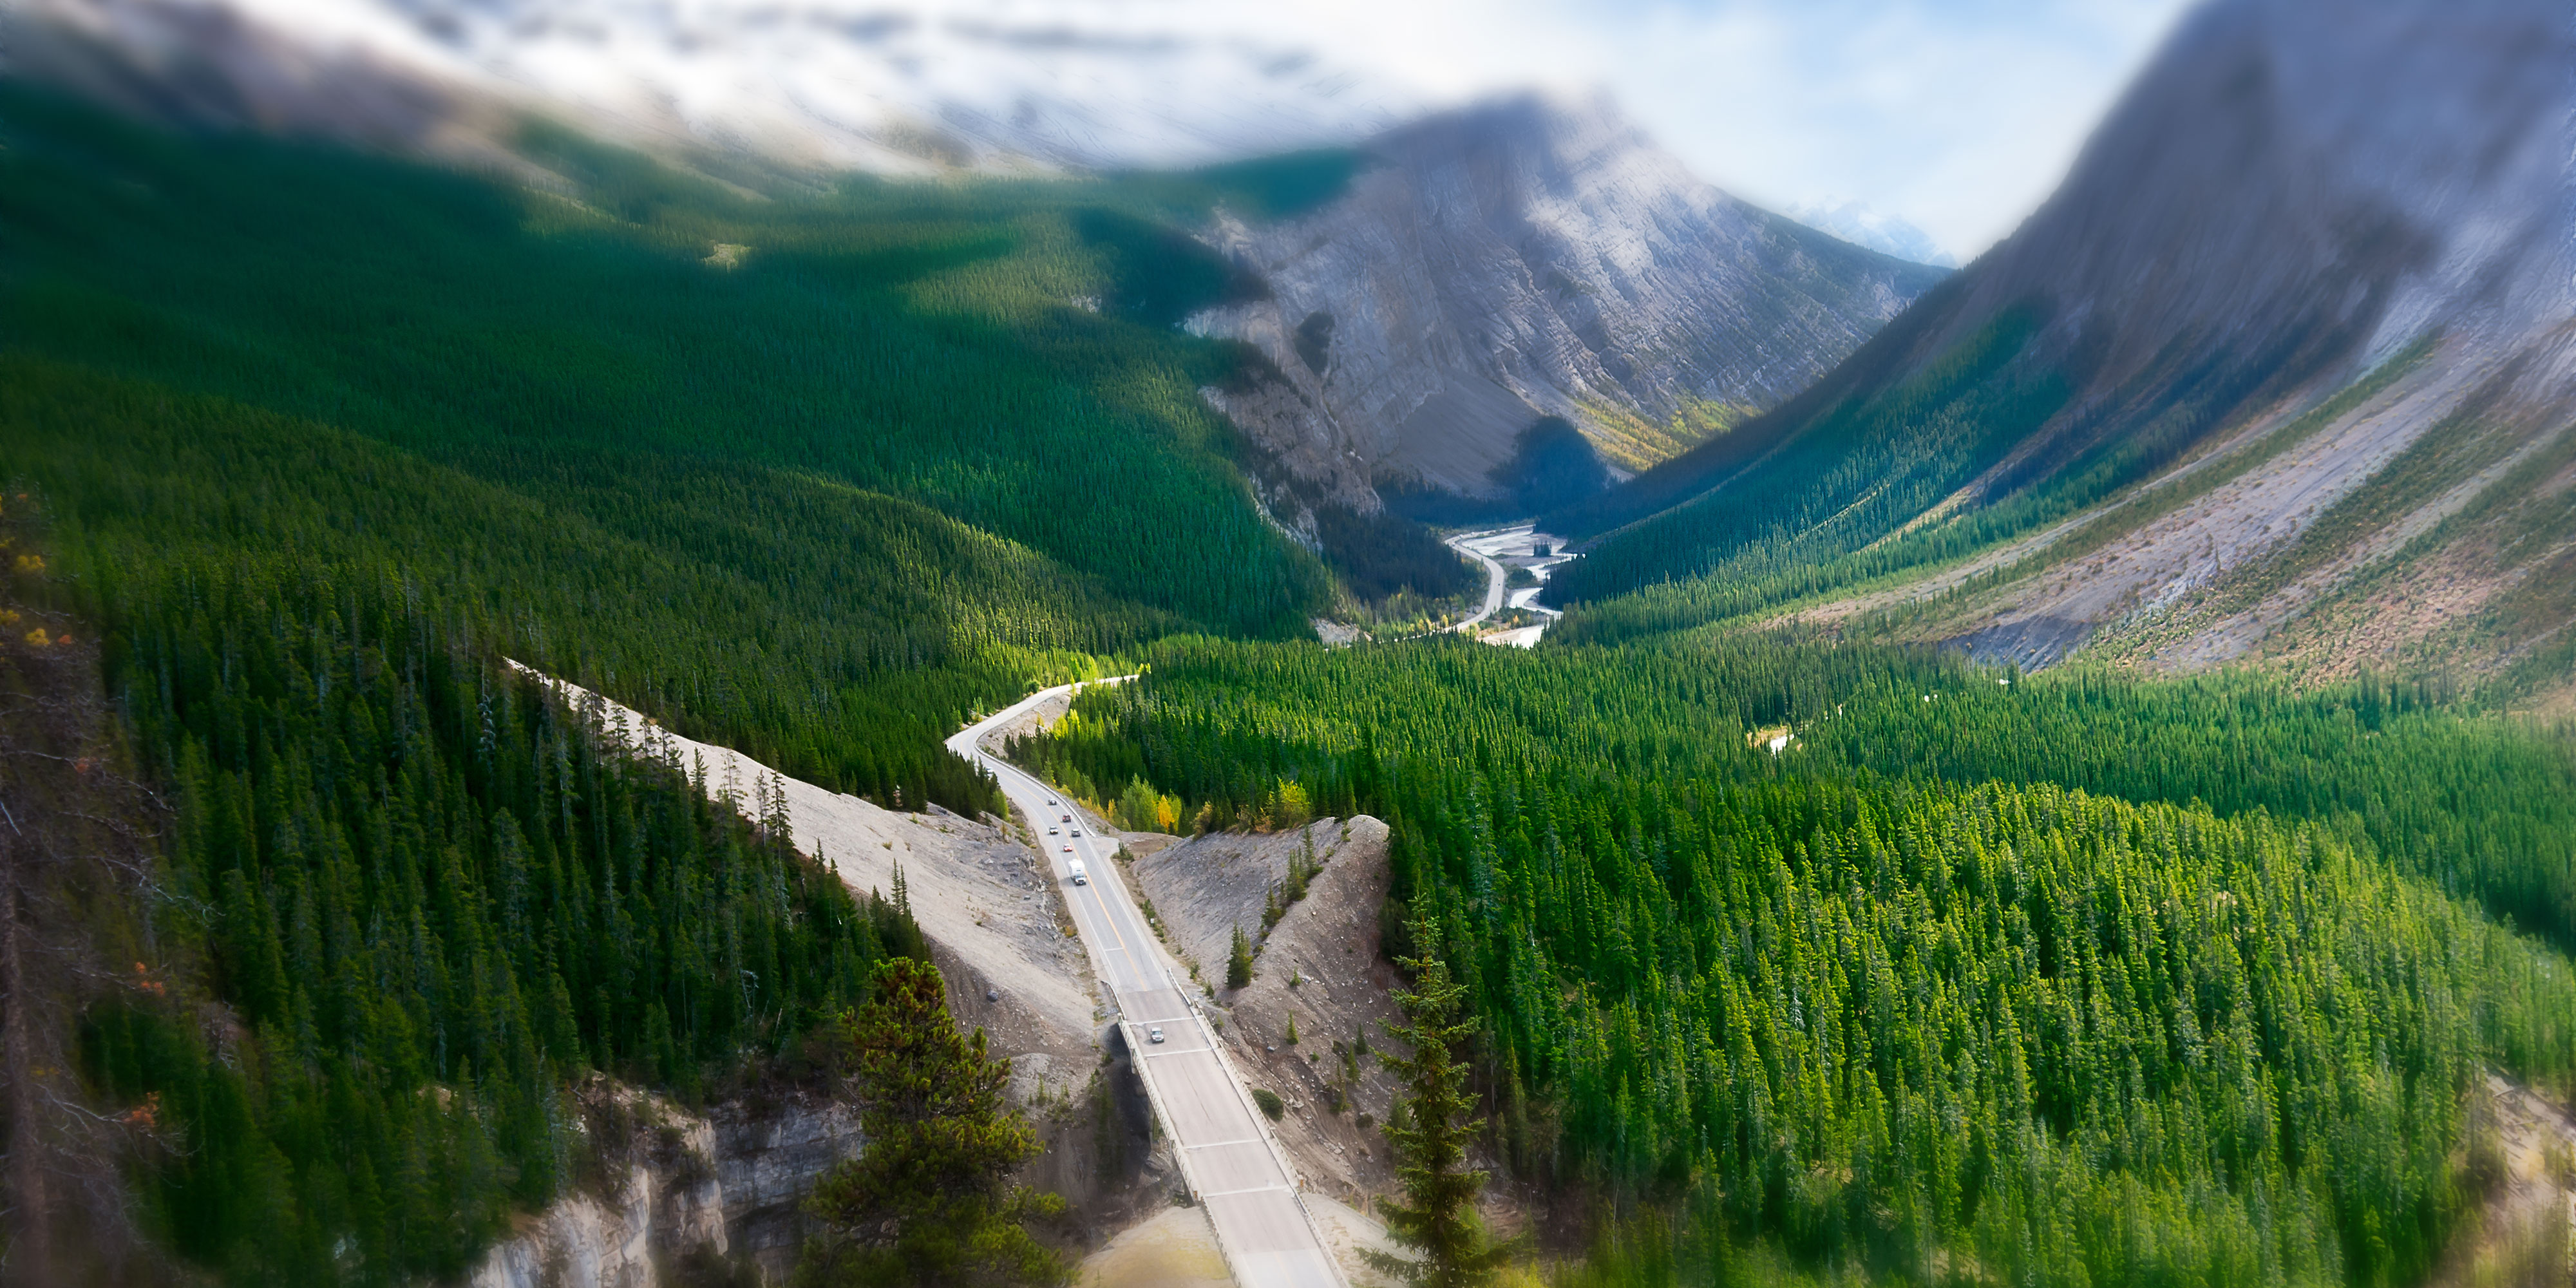 A highway through mountains.